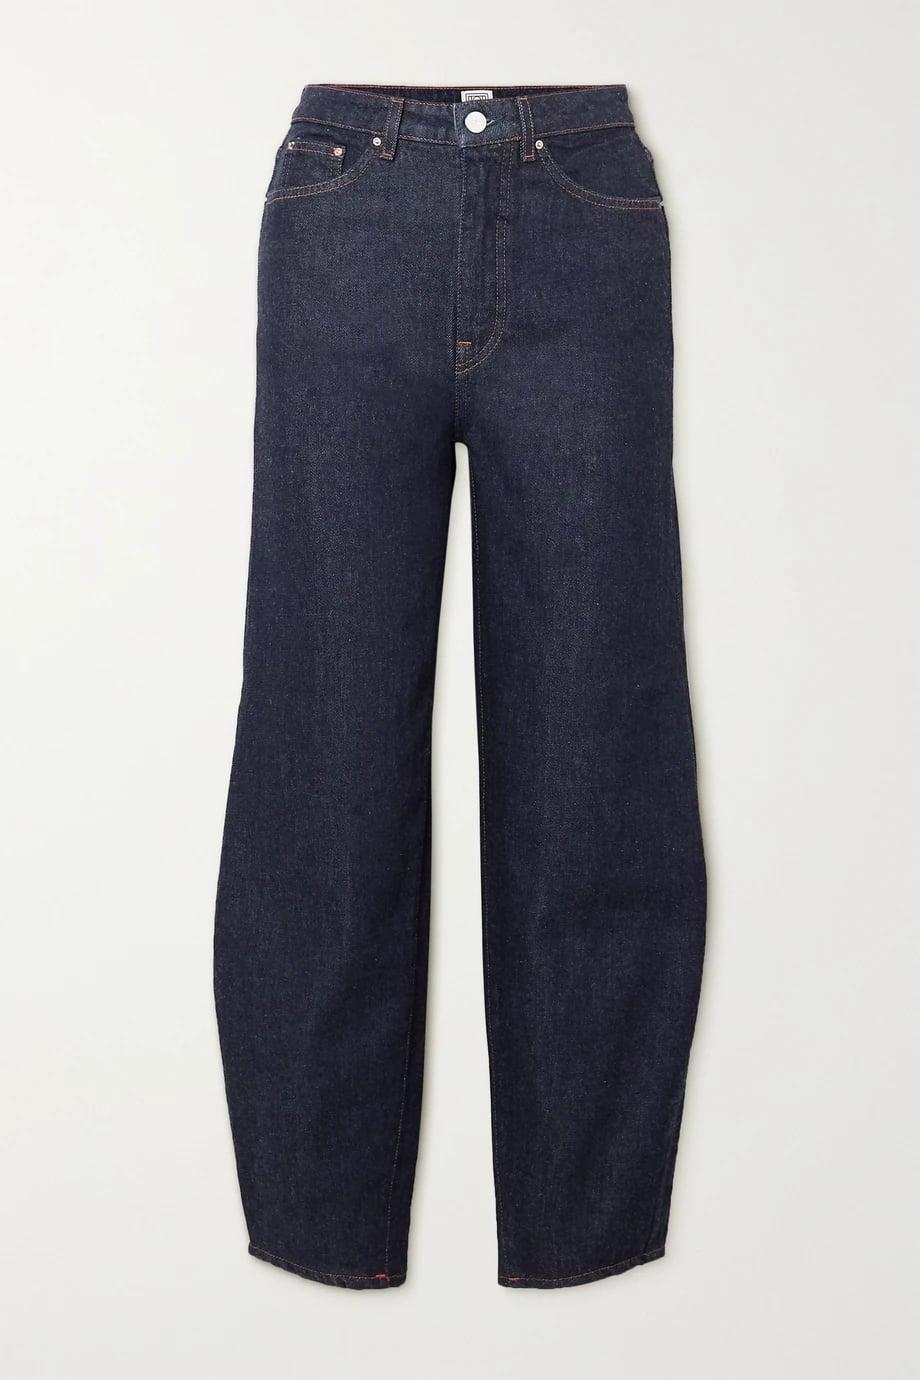 <p><span>Totême's High-Rise Tapered Jeans </span> ($320) make for an exaggerated look.</p>